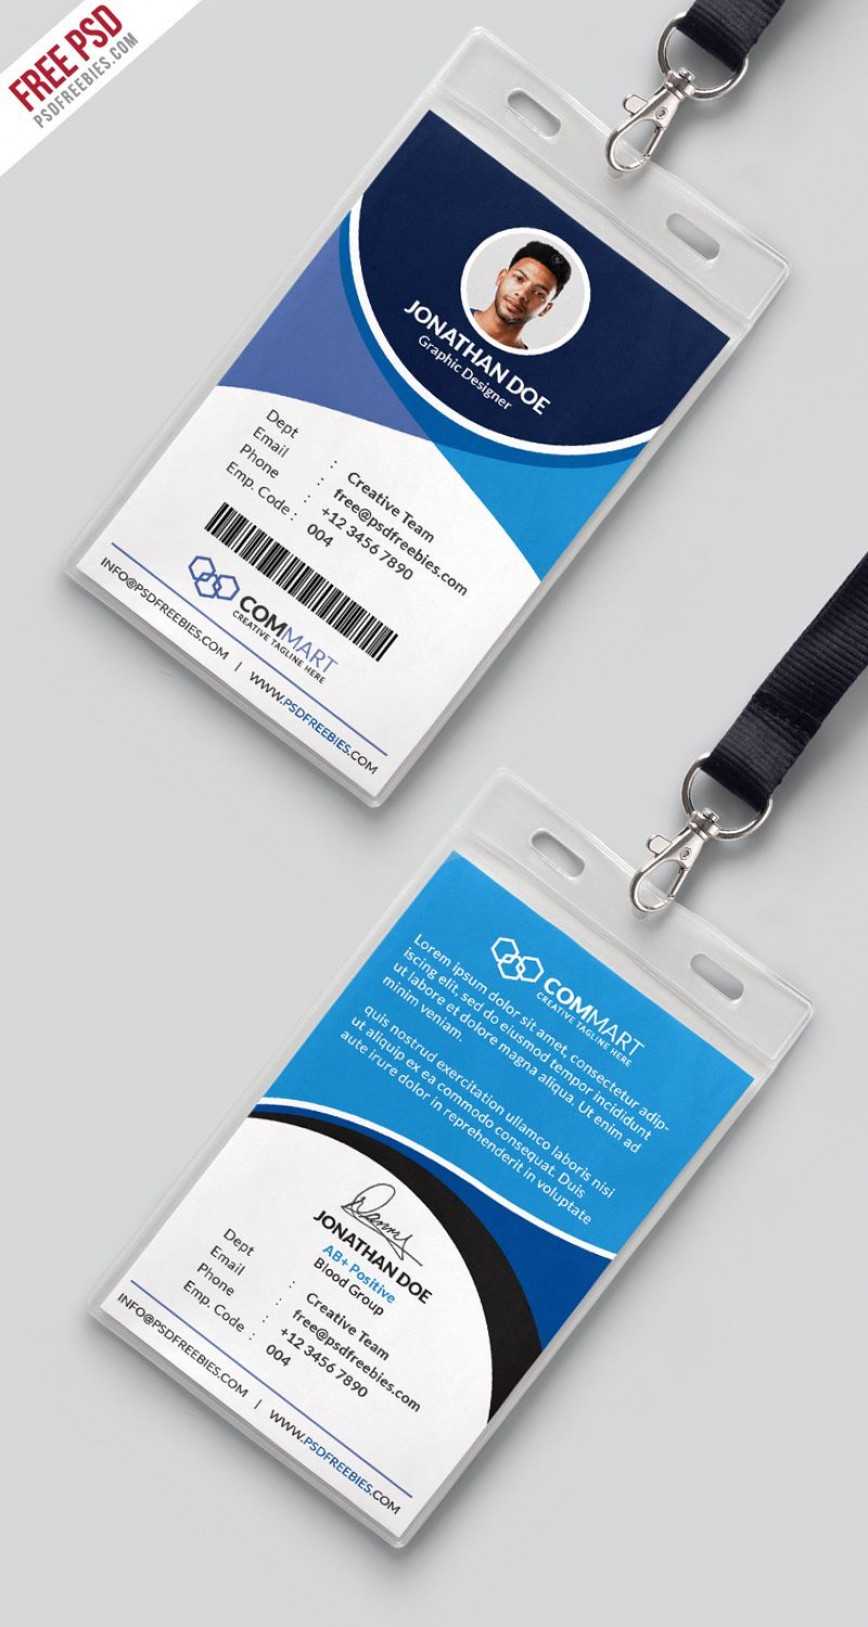 008 Archaicawful Id Badge Template Photoshop High Definition  Employee868